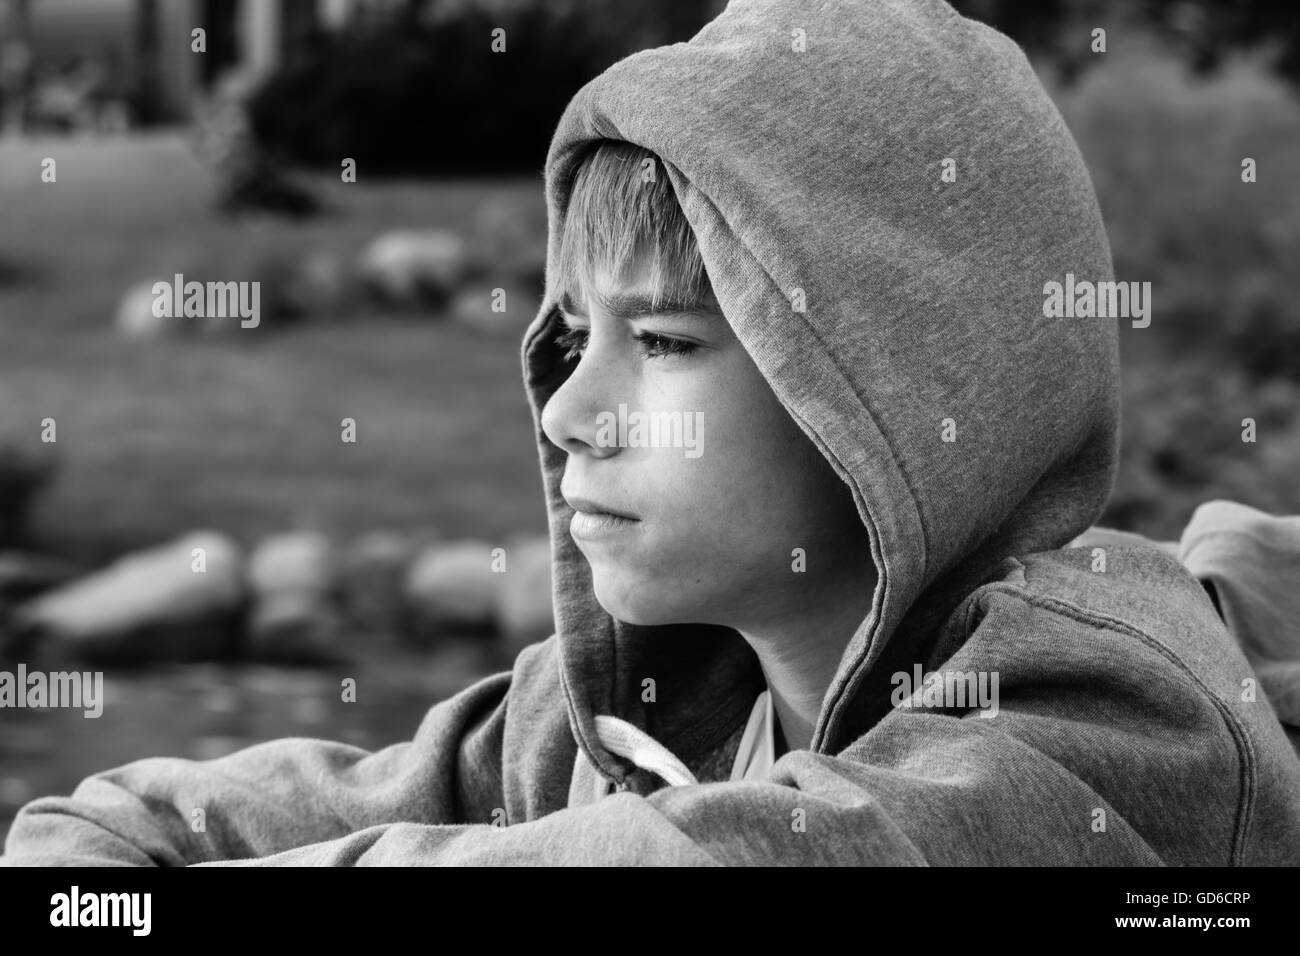 Boy lost in thought Stock Photo